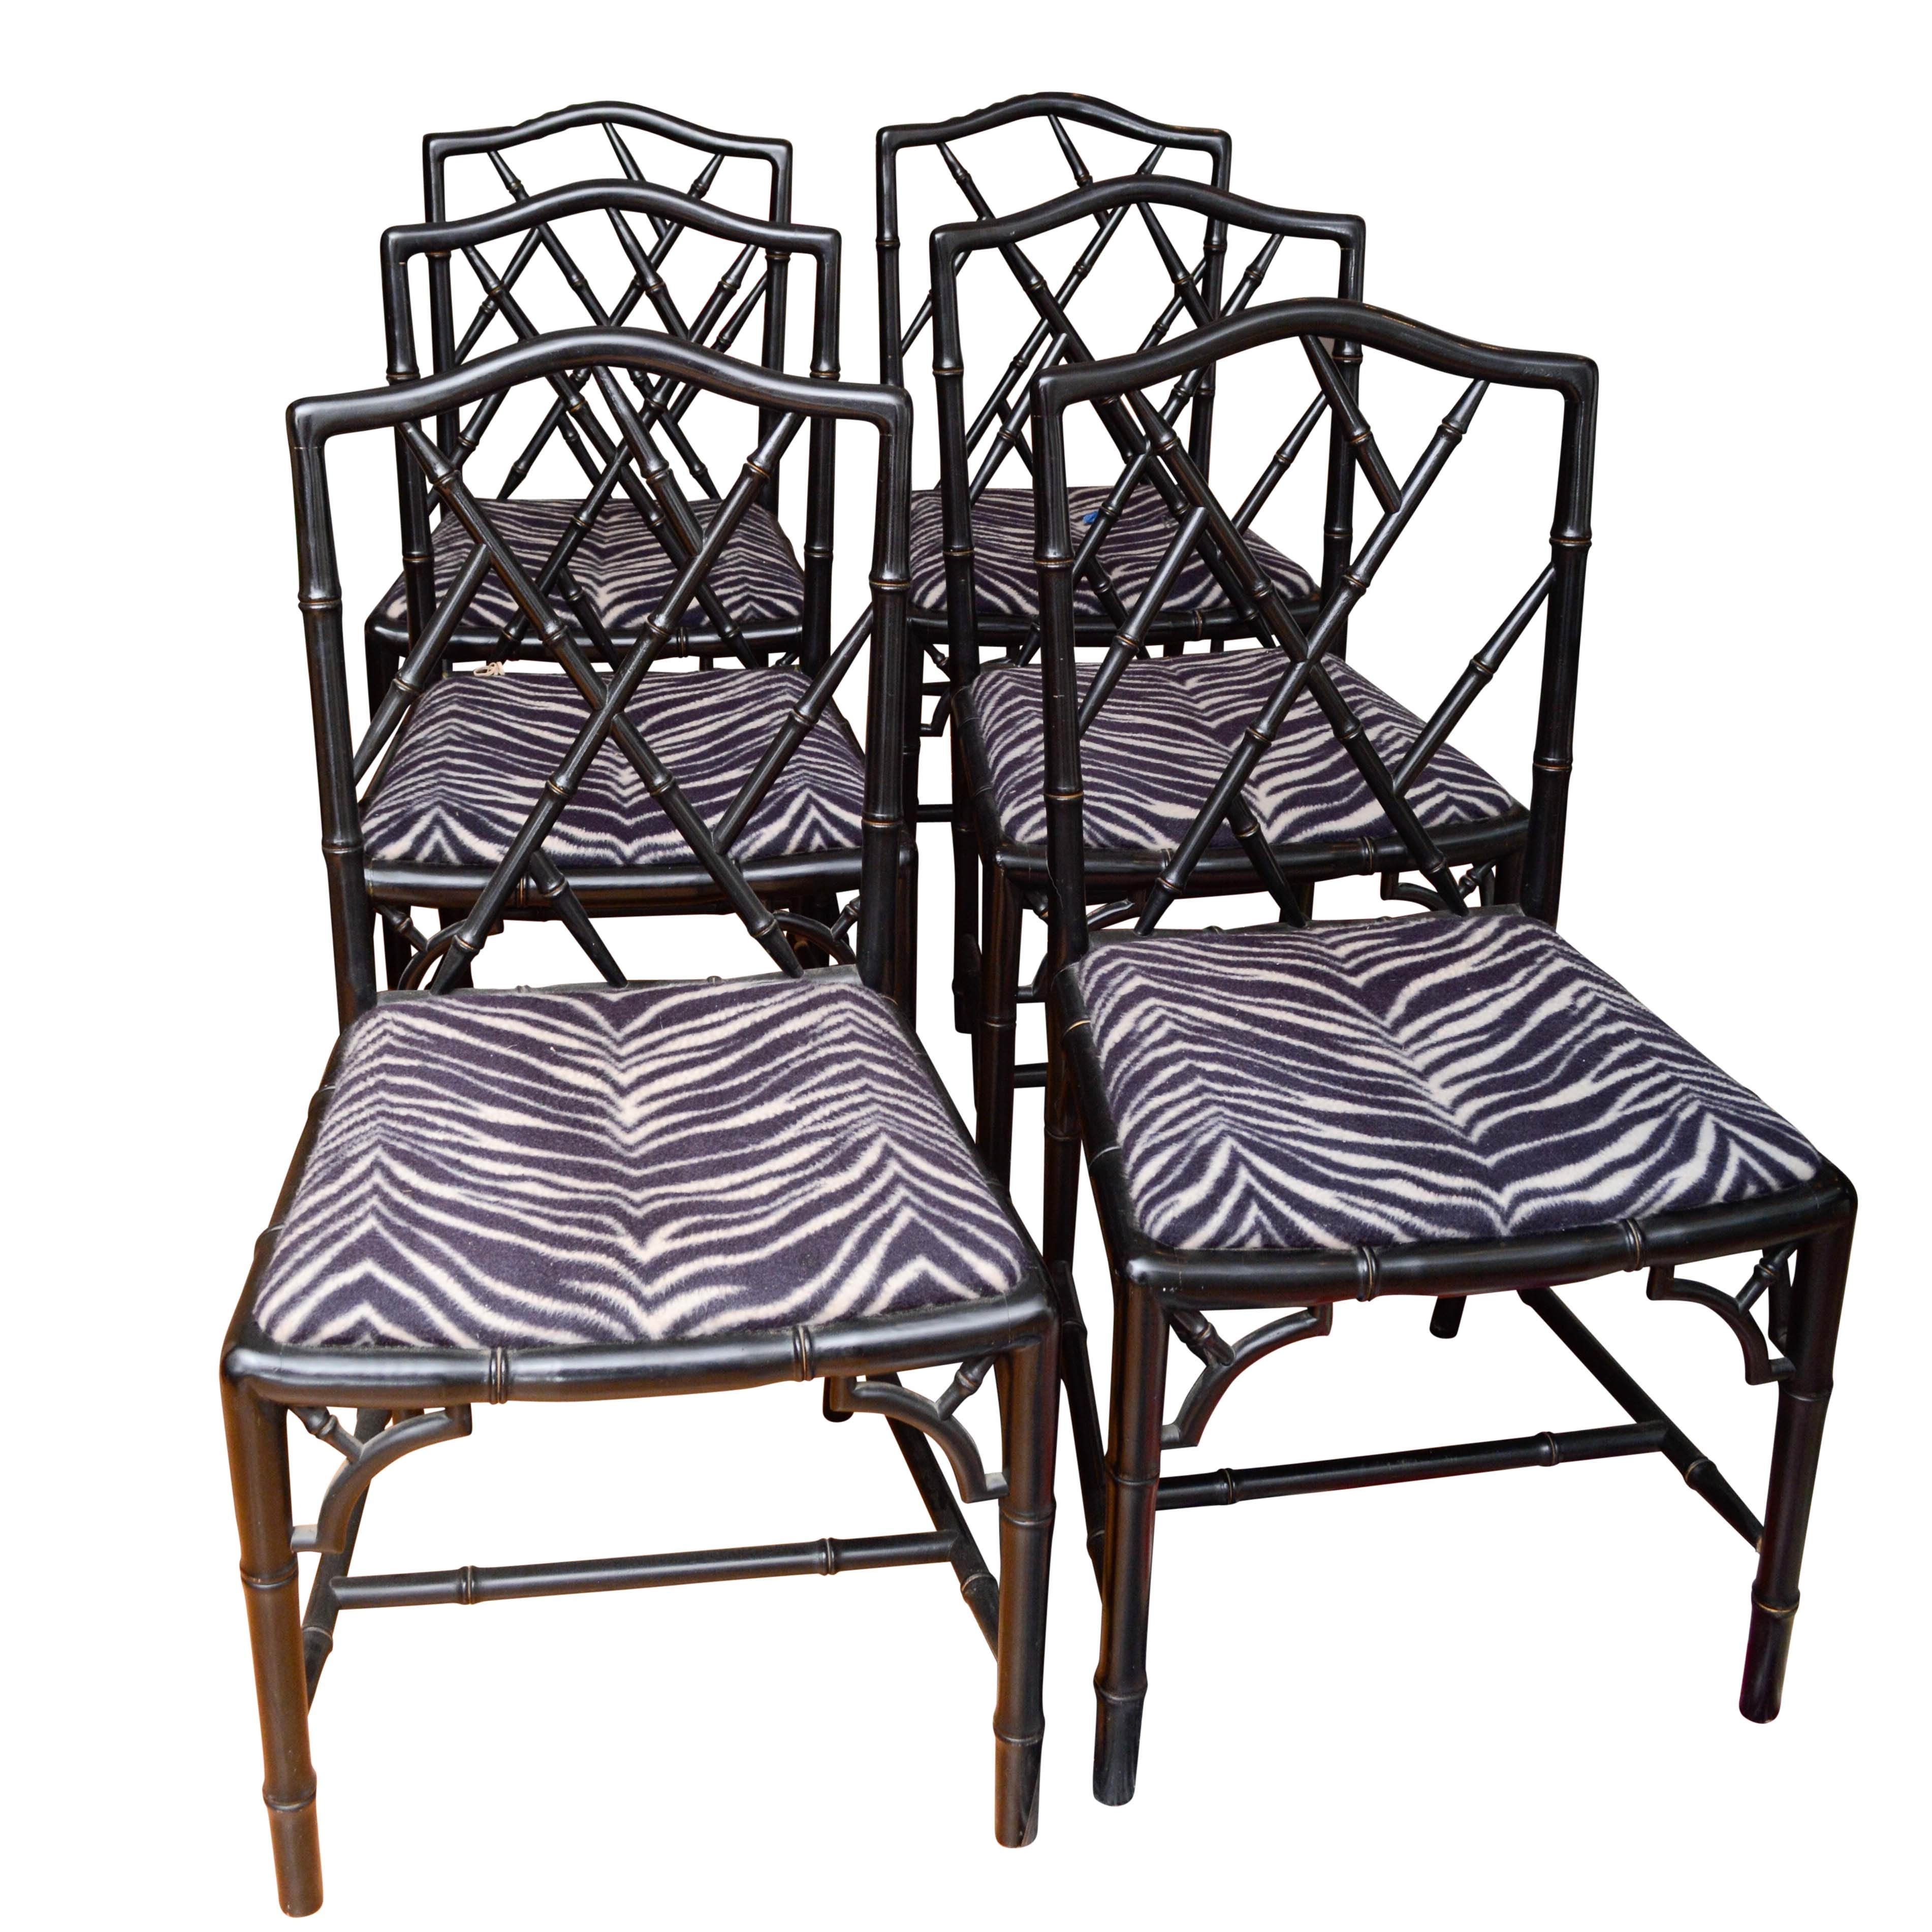 Chinese Chippendale-Style Side Chair with Zebra Print Upholstered Seats